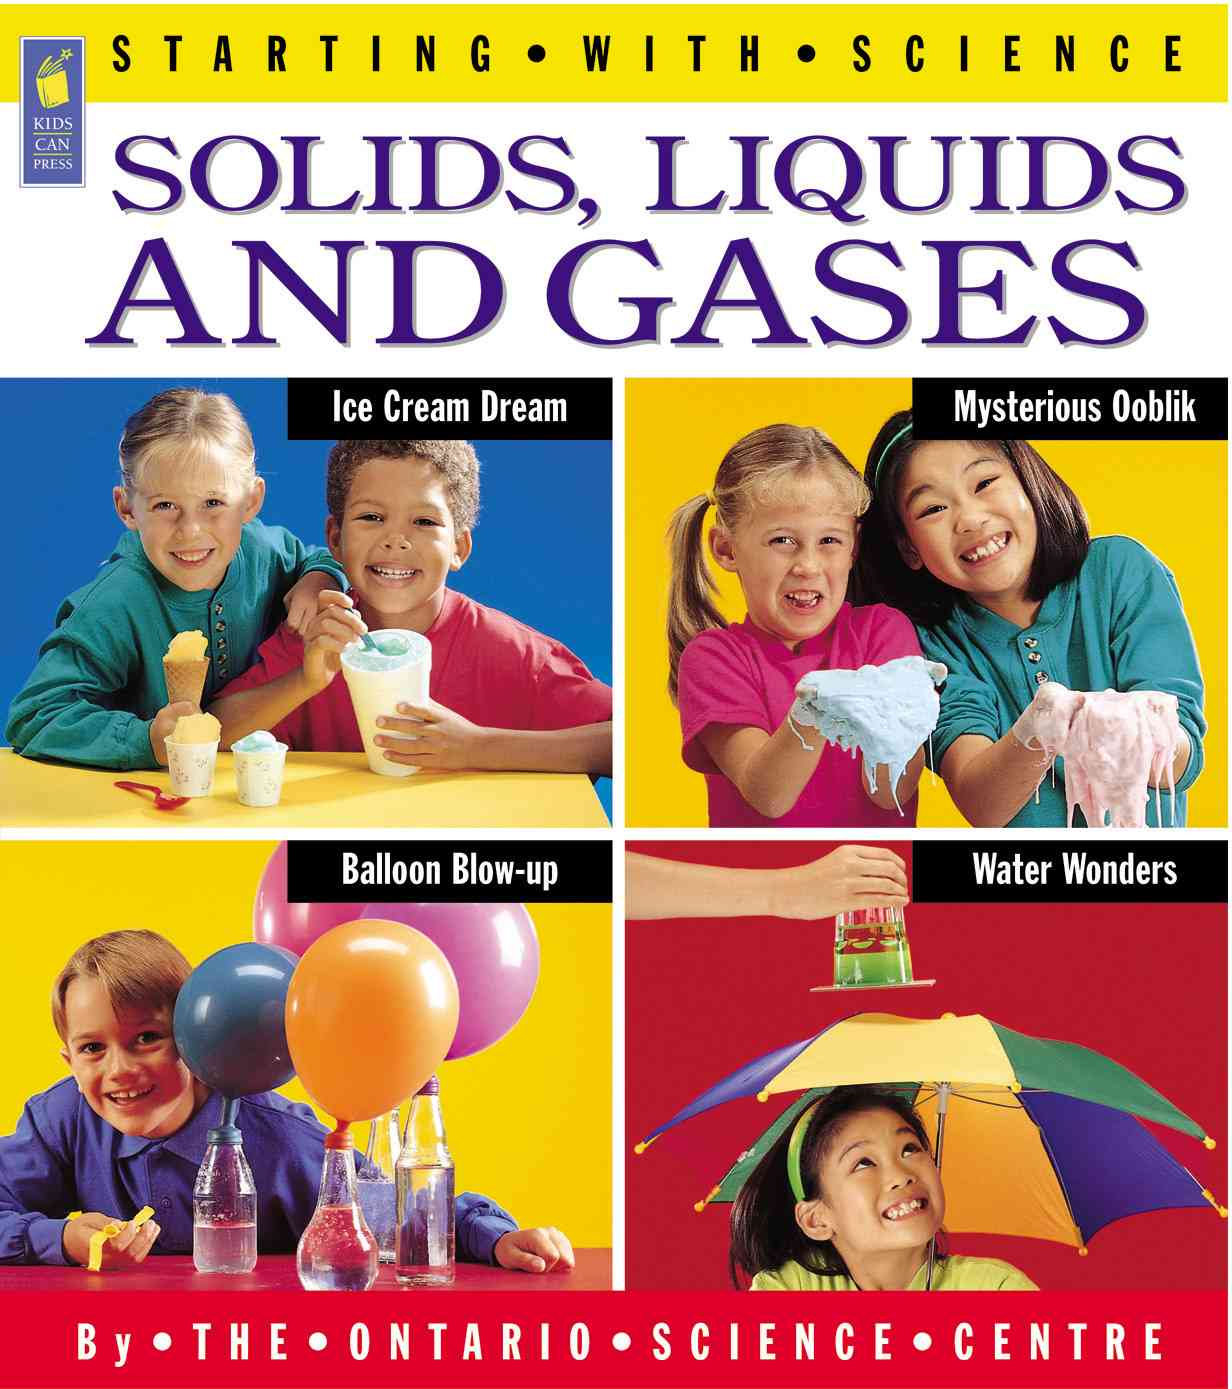 Solids, Liquids and Gases By Osborne, Louise/ Hodge, Deborah/ Ontario Science Centre/ Mason, Adrienne